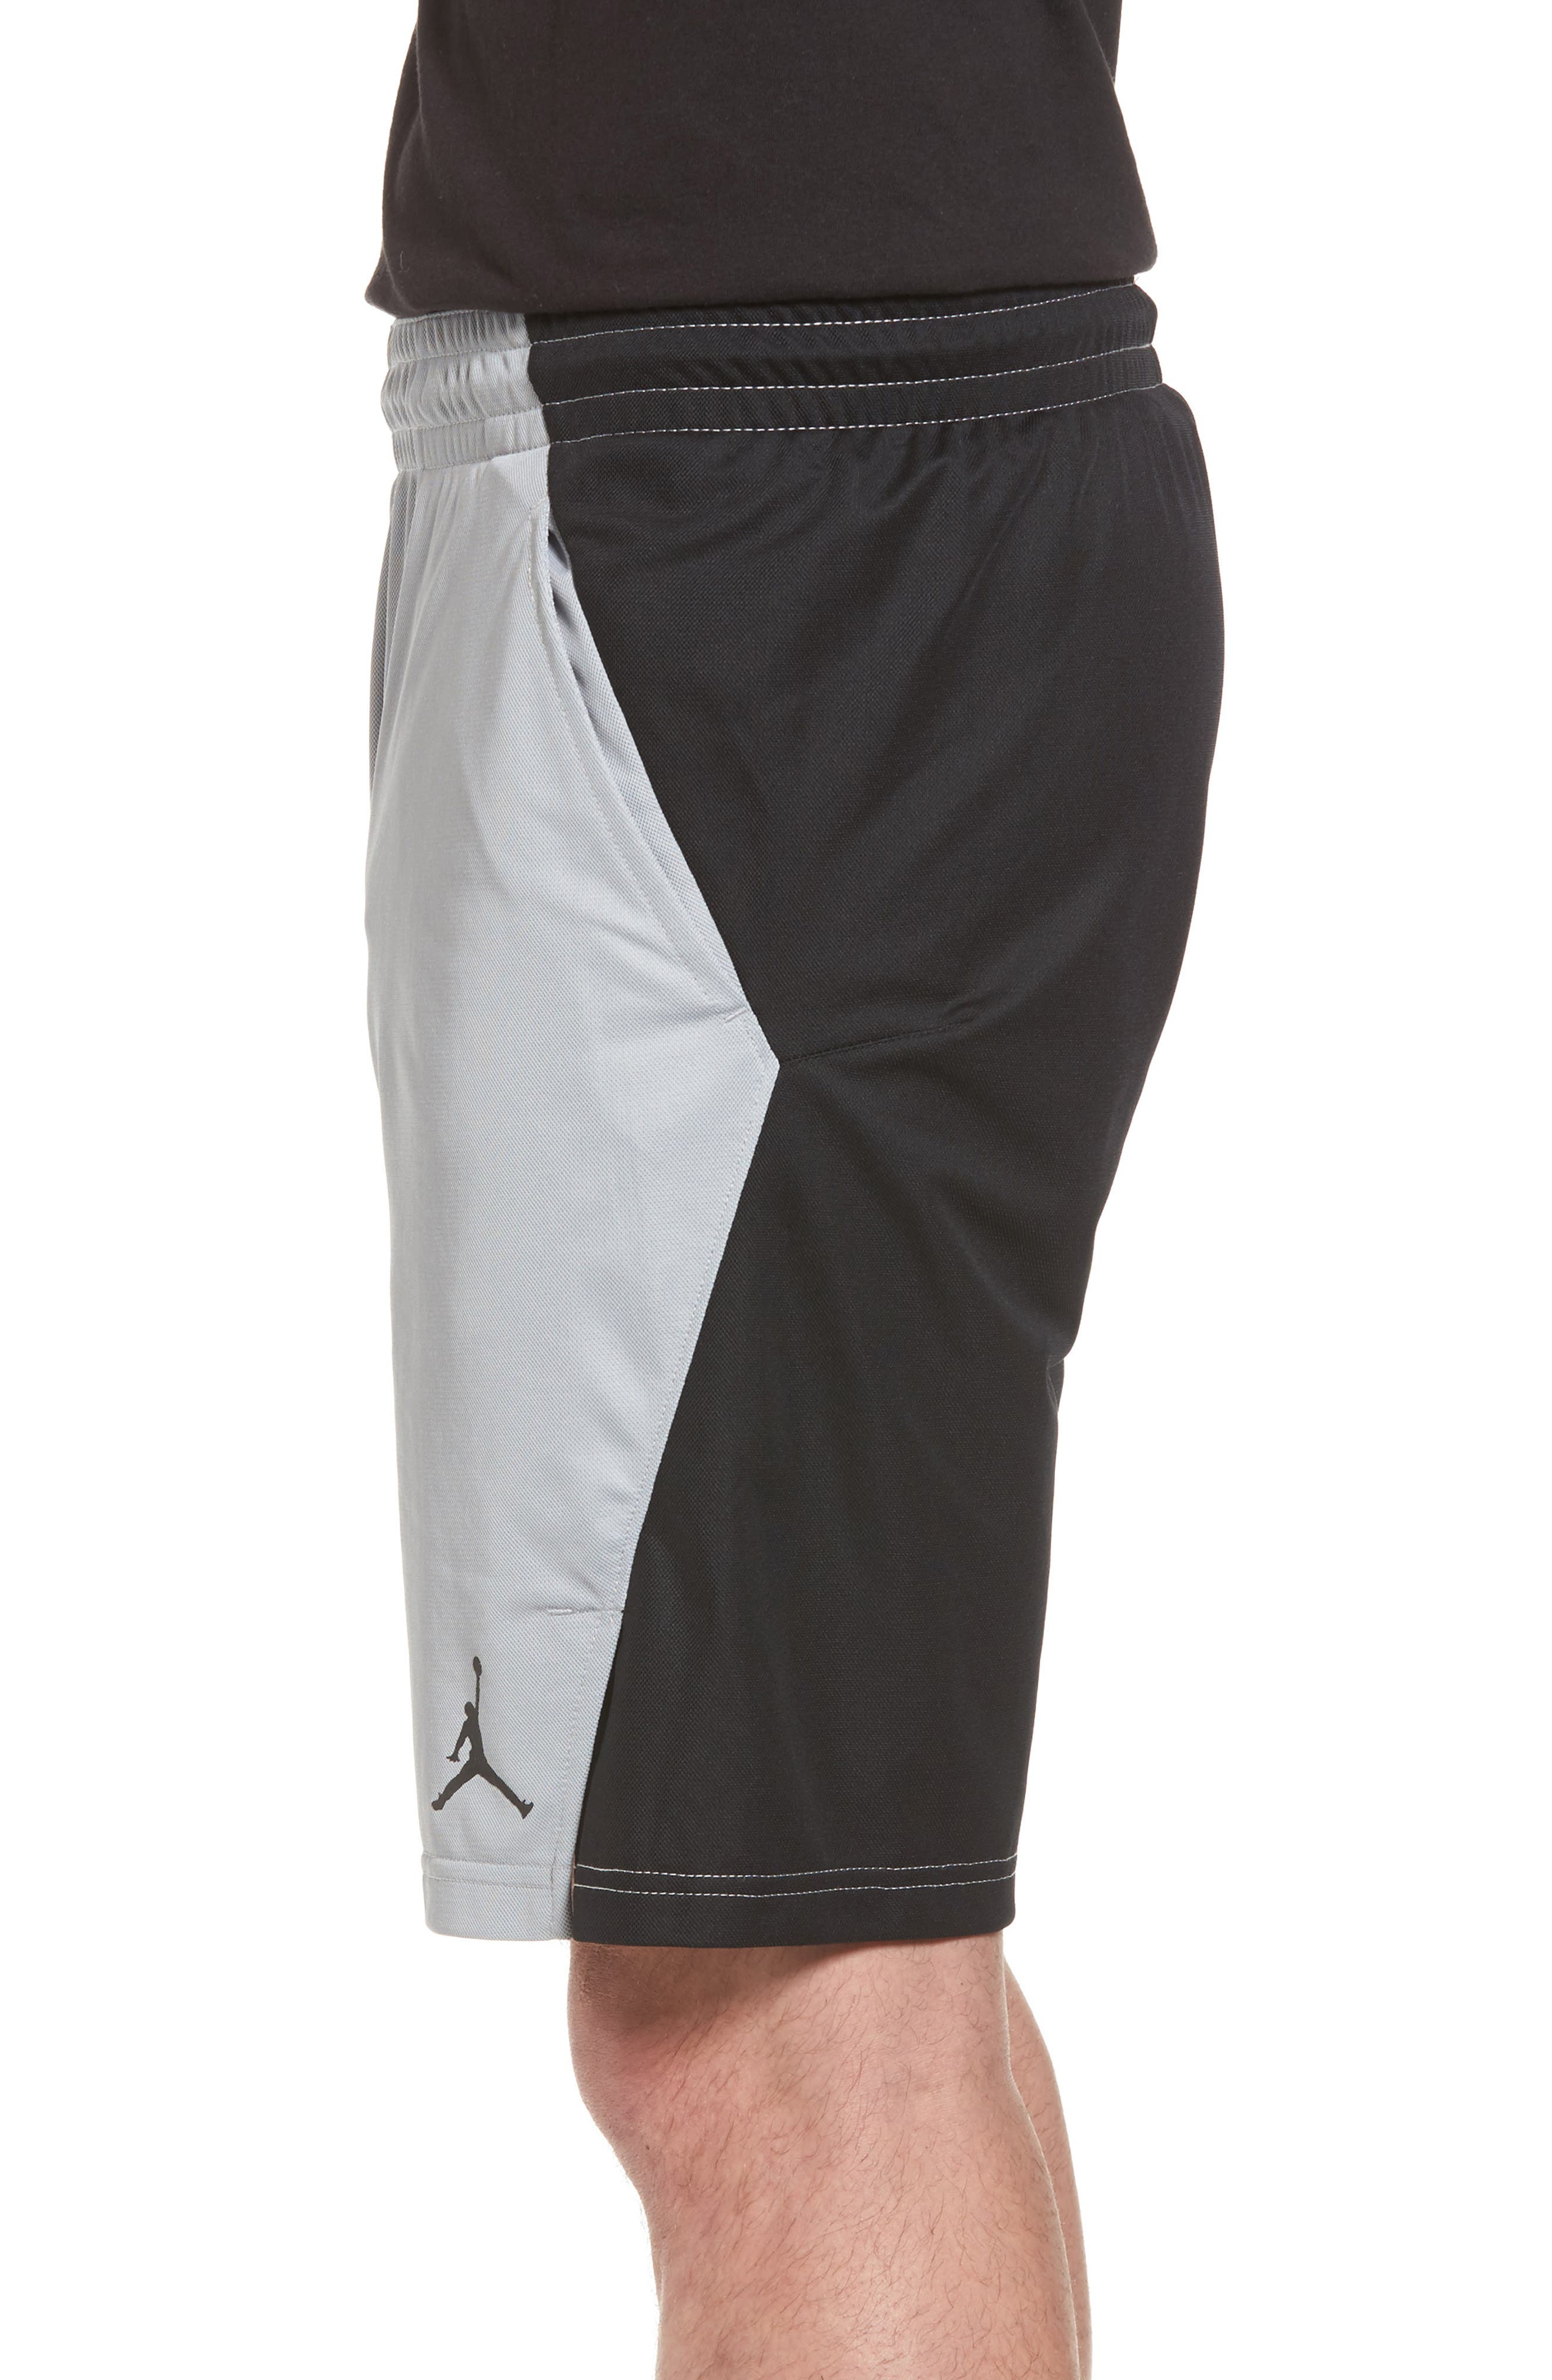 Flight Basketball Shorts,                             Alternate thumbnail 3, color,                             Wolf Grey/ Black/ Black